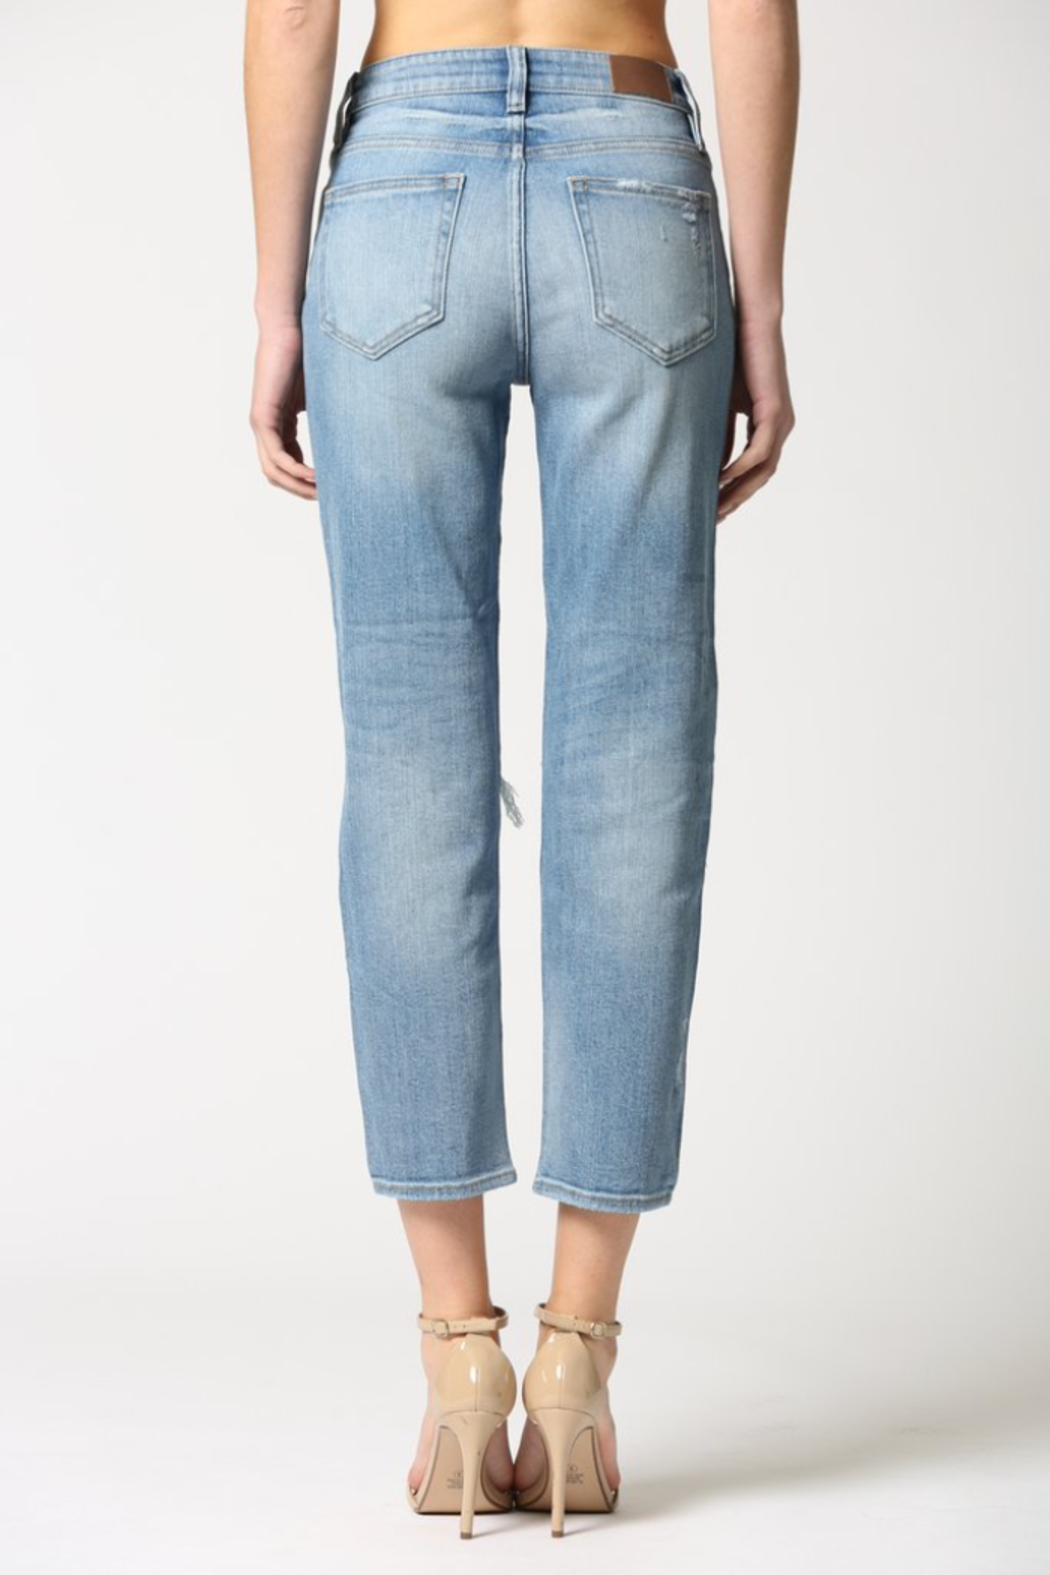 Hidden Jeans Zoey Distressed Mom Jeans - Back Cropped Image